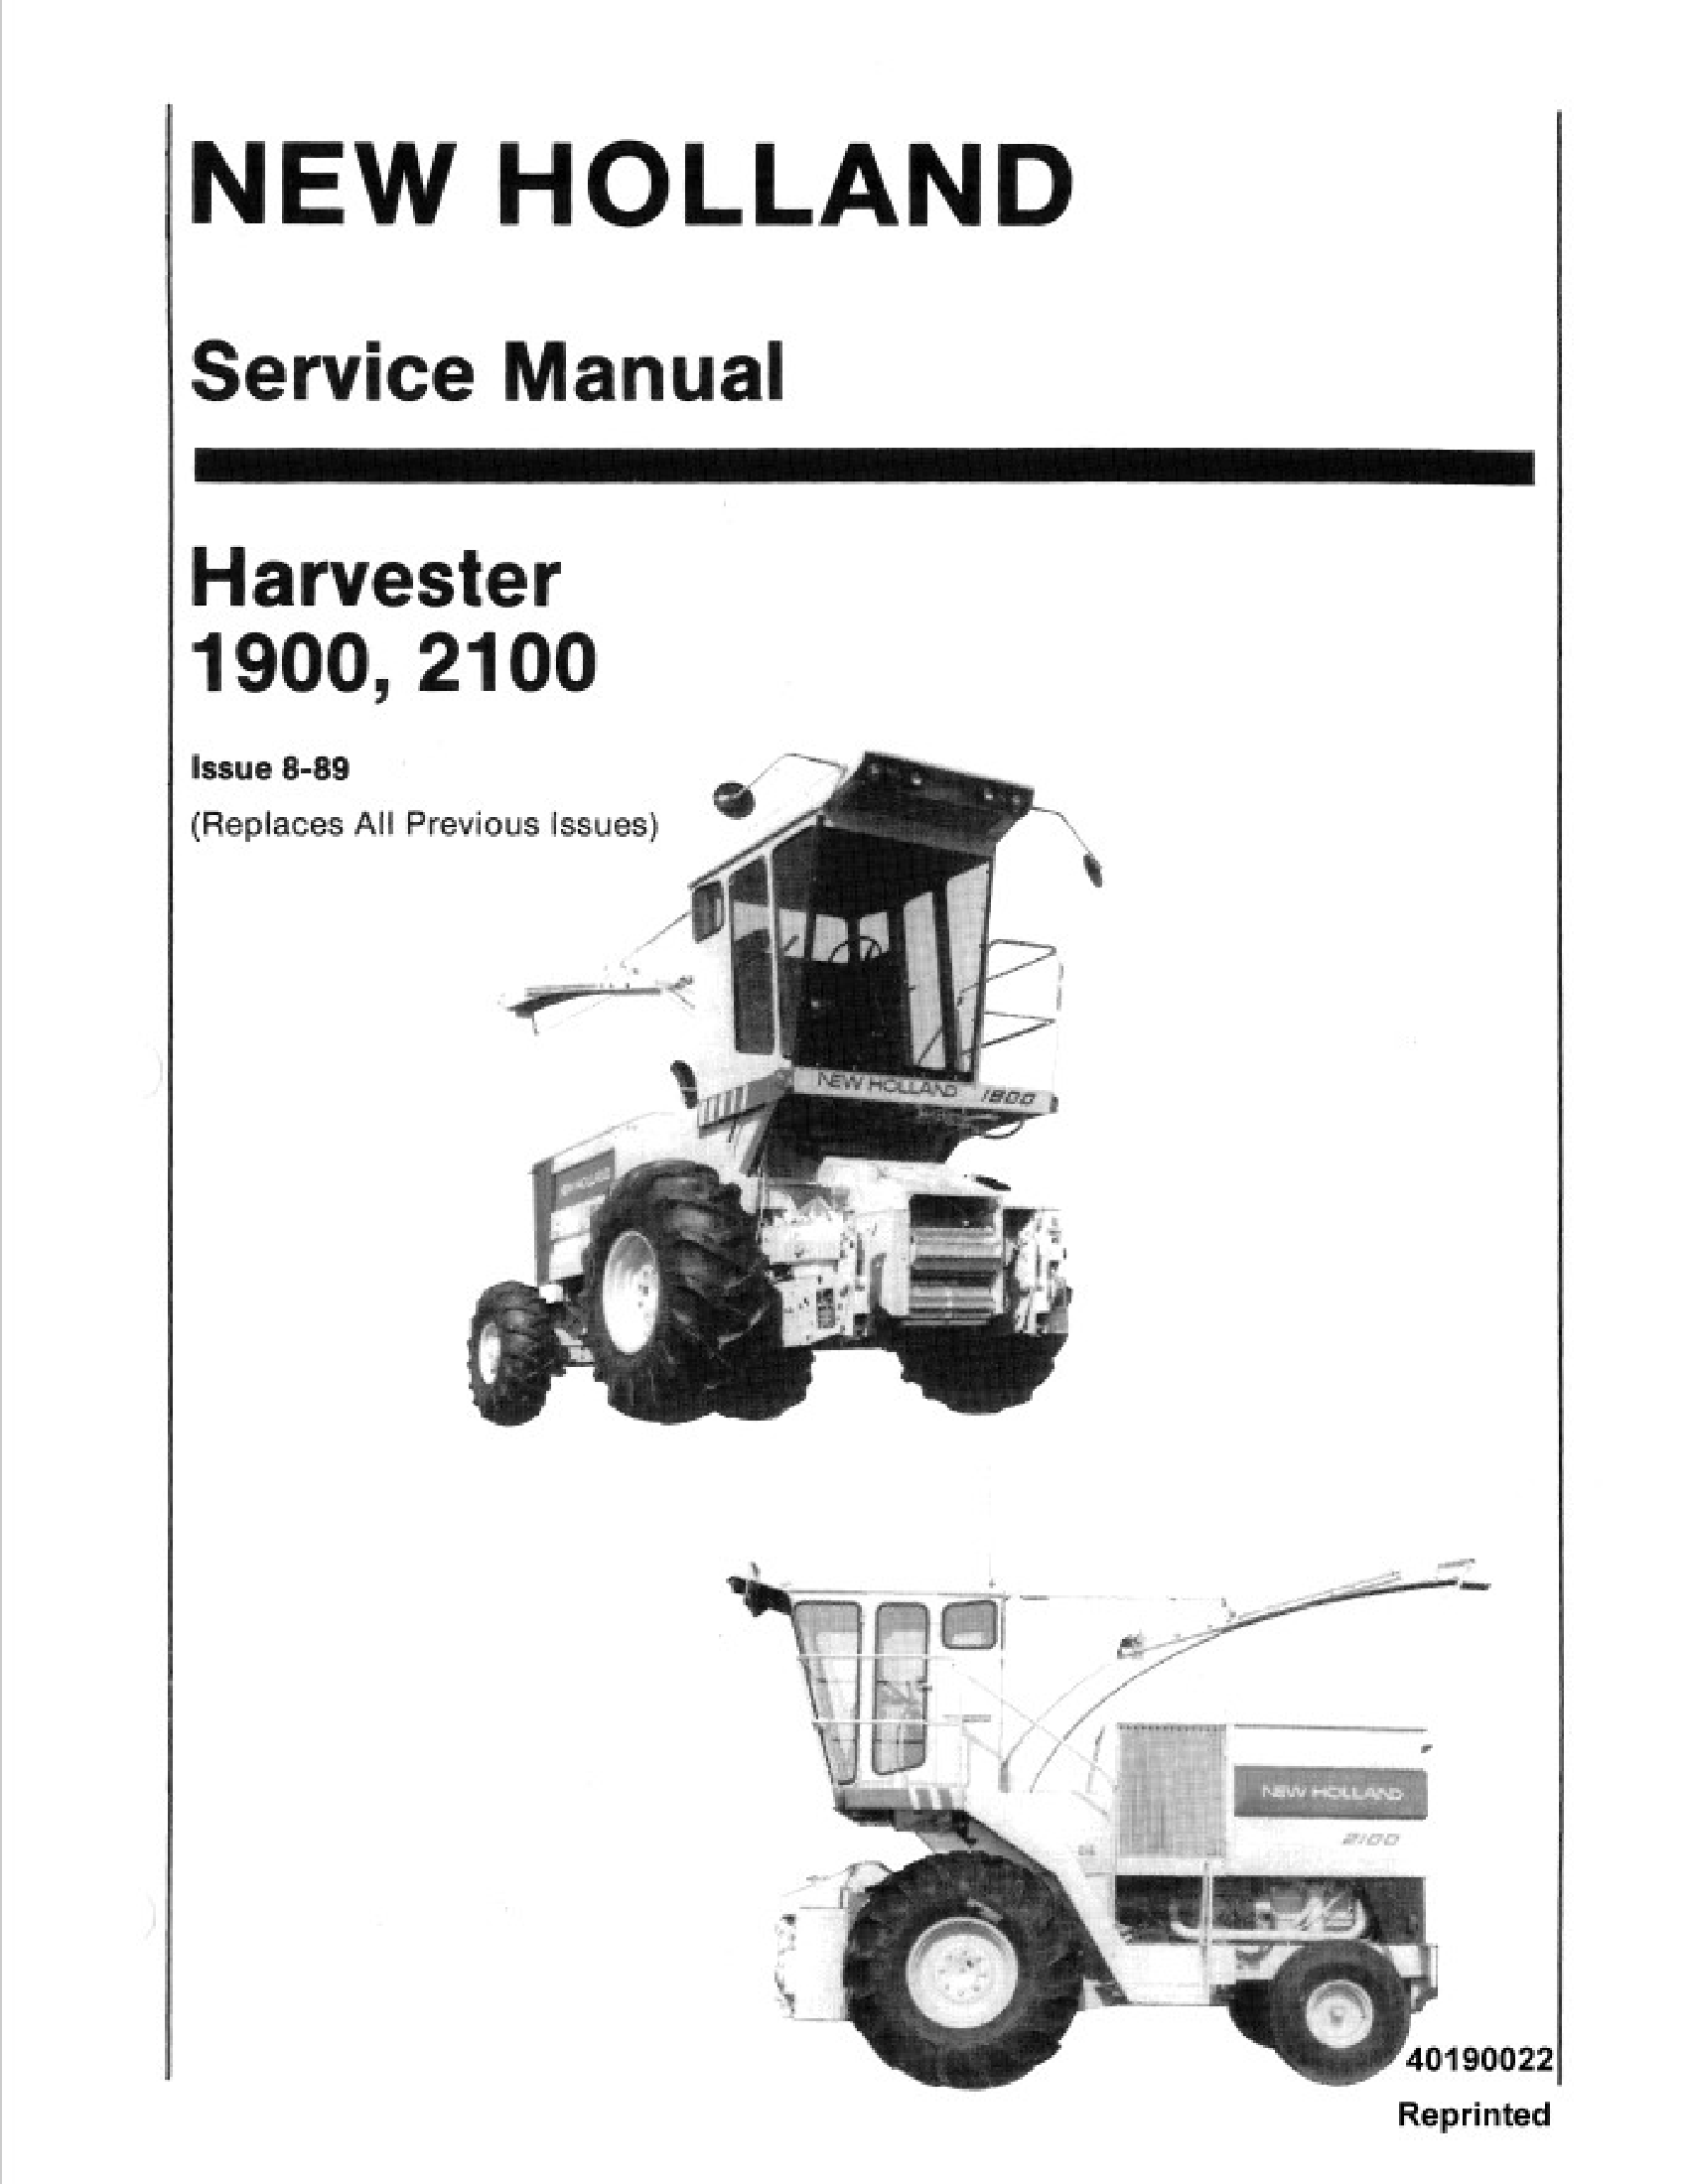 New Holland 1900 Harvester Manual In 2020 New Holland Owners Manuals Harvester